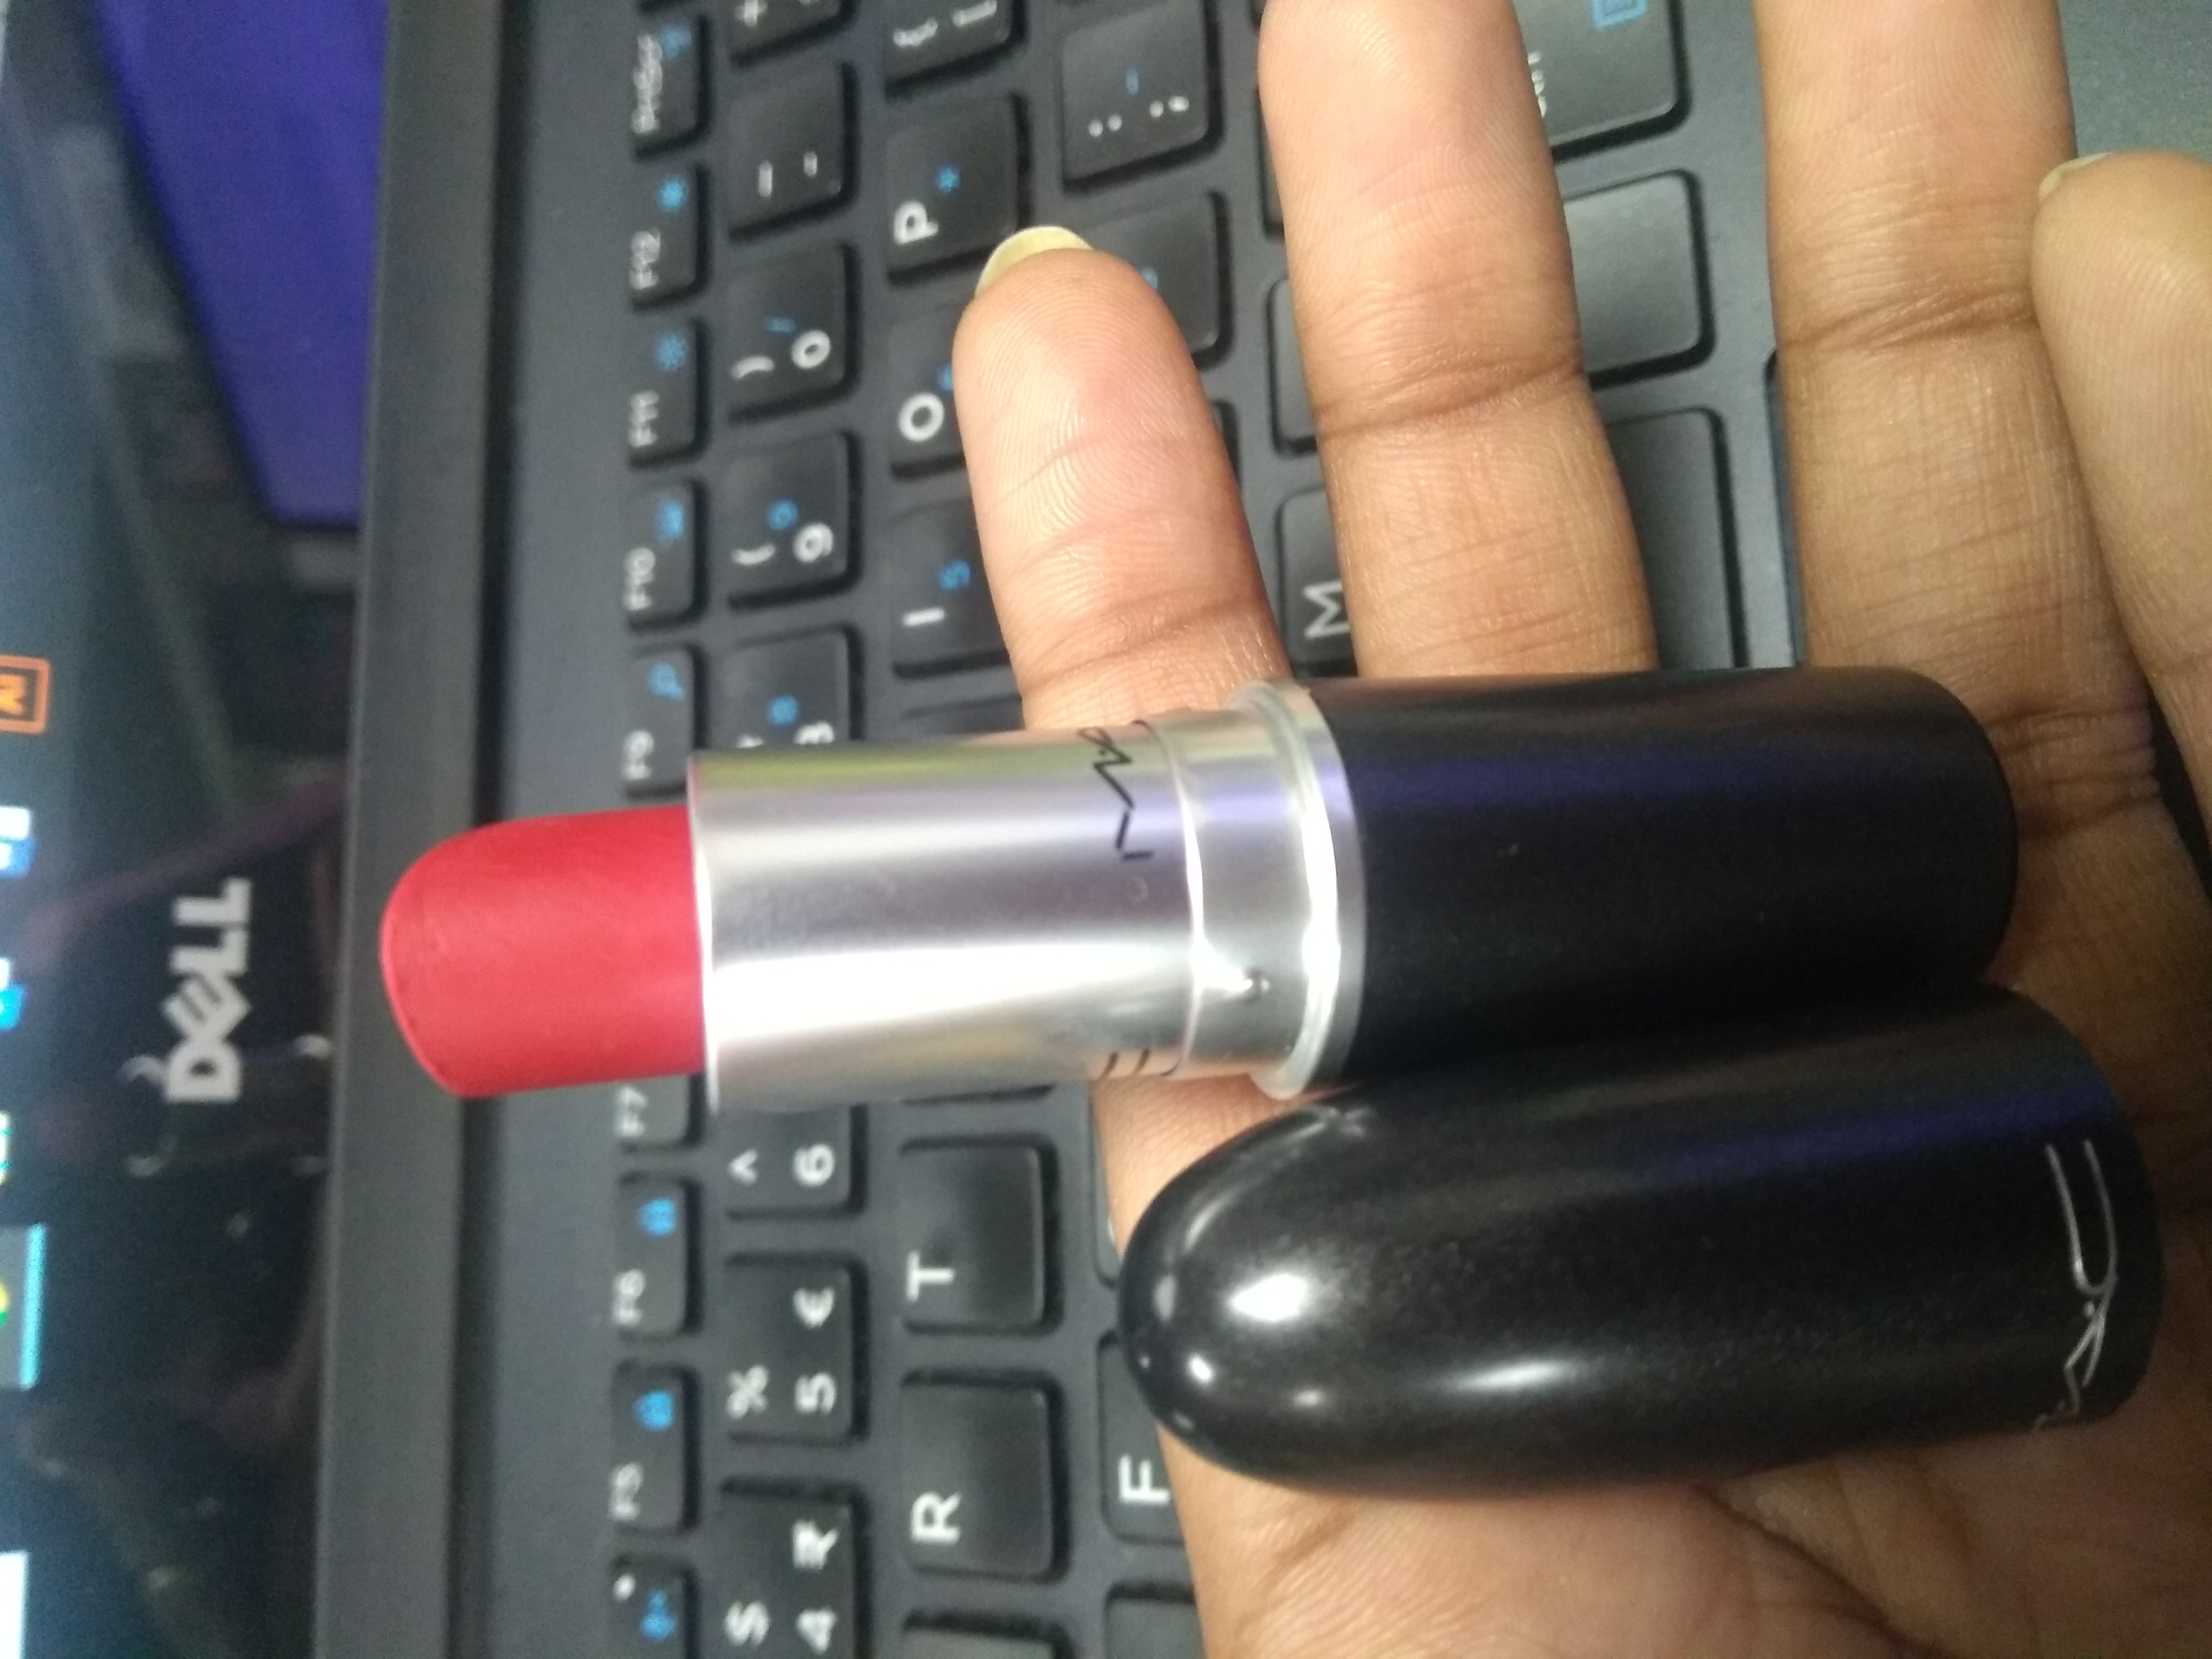 MAC Retro Matte Lipstick-MAC is mac!!-By priya3191